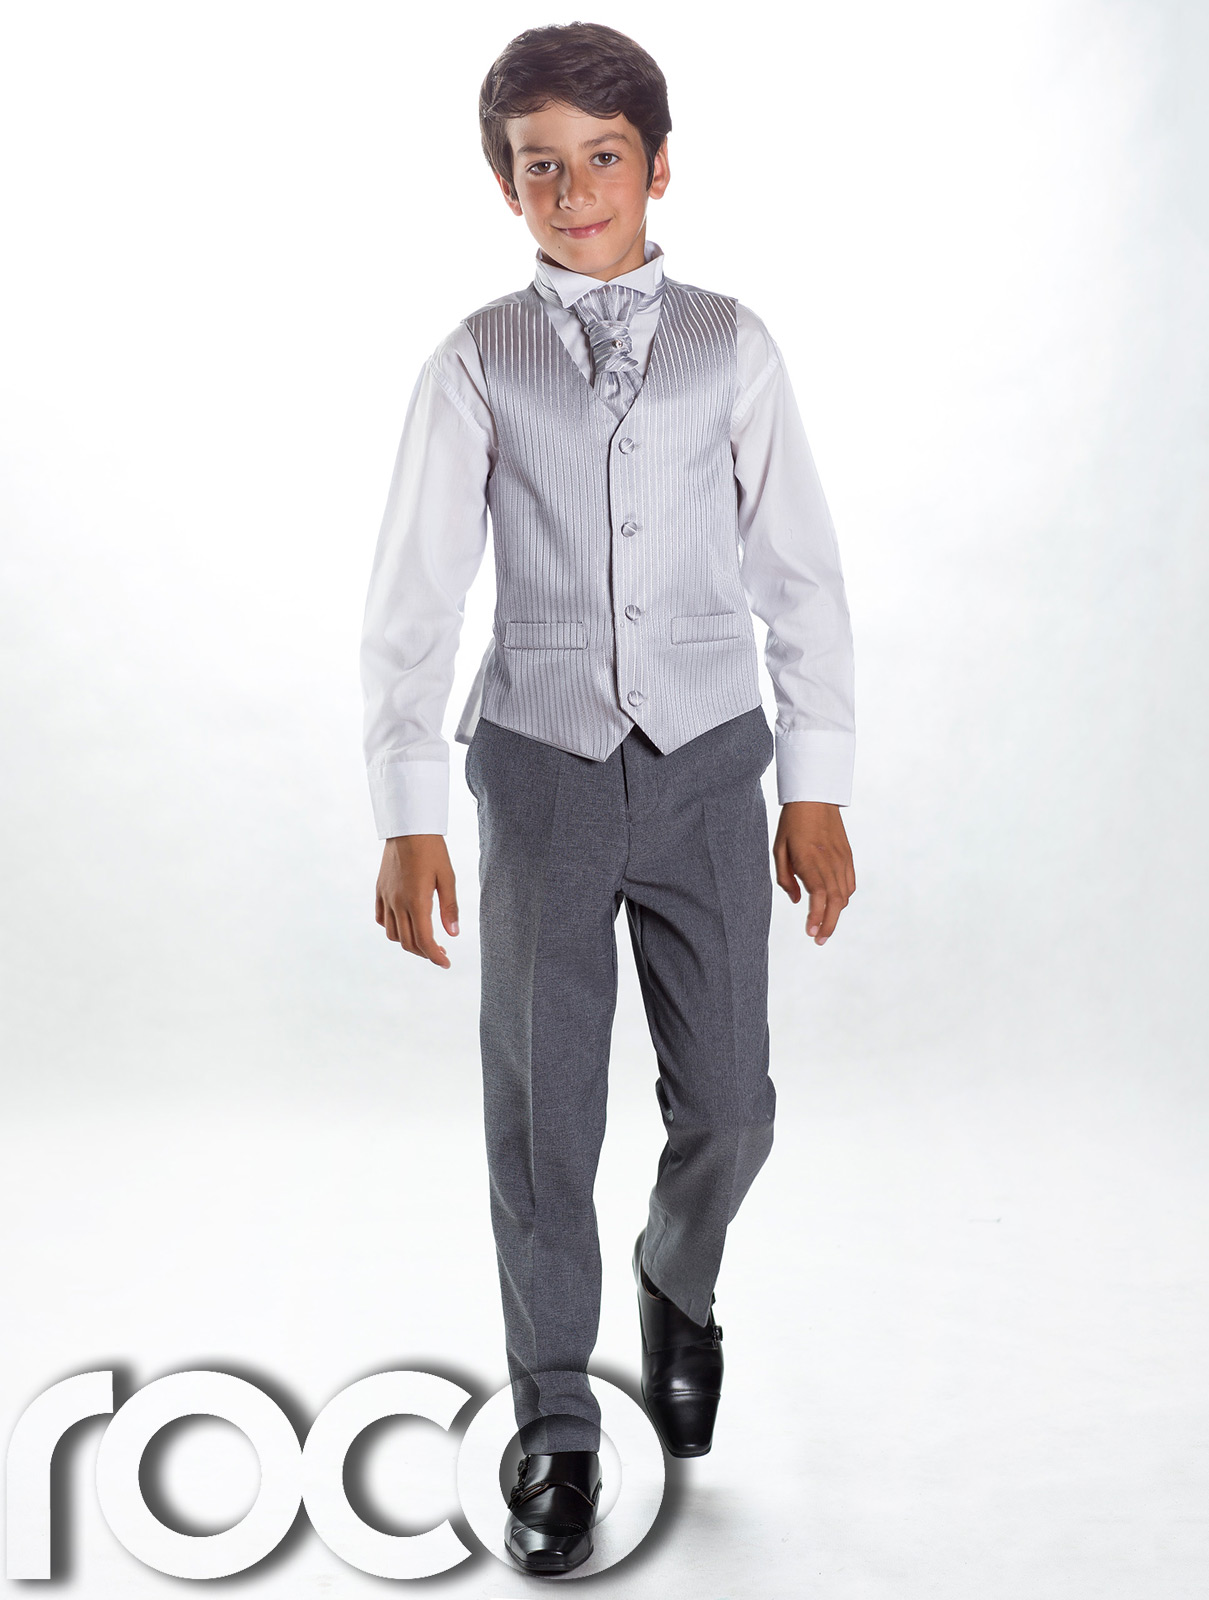 Handmade baby boy's occasion wear formal suit in a grey waistcoat with blue shirt and trousers; a classic look for a wedding party or baby birthday. Black Bow Tie Set Boys Waistcoat with Tuxedo Shirt (3 to 16 yrs) As low as ₹1, Newborn Baby White Tuxedo One Piece Great for Party Wedding, Occasion Wear.